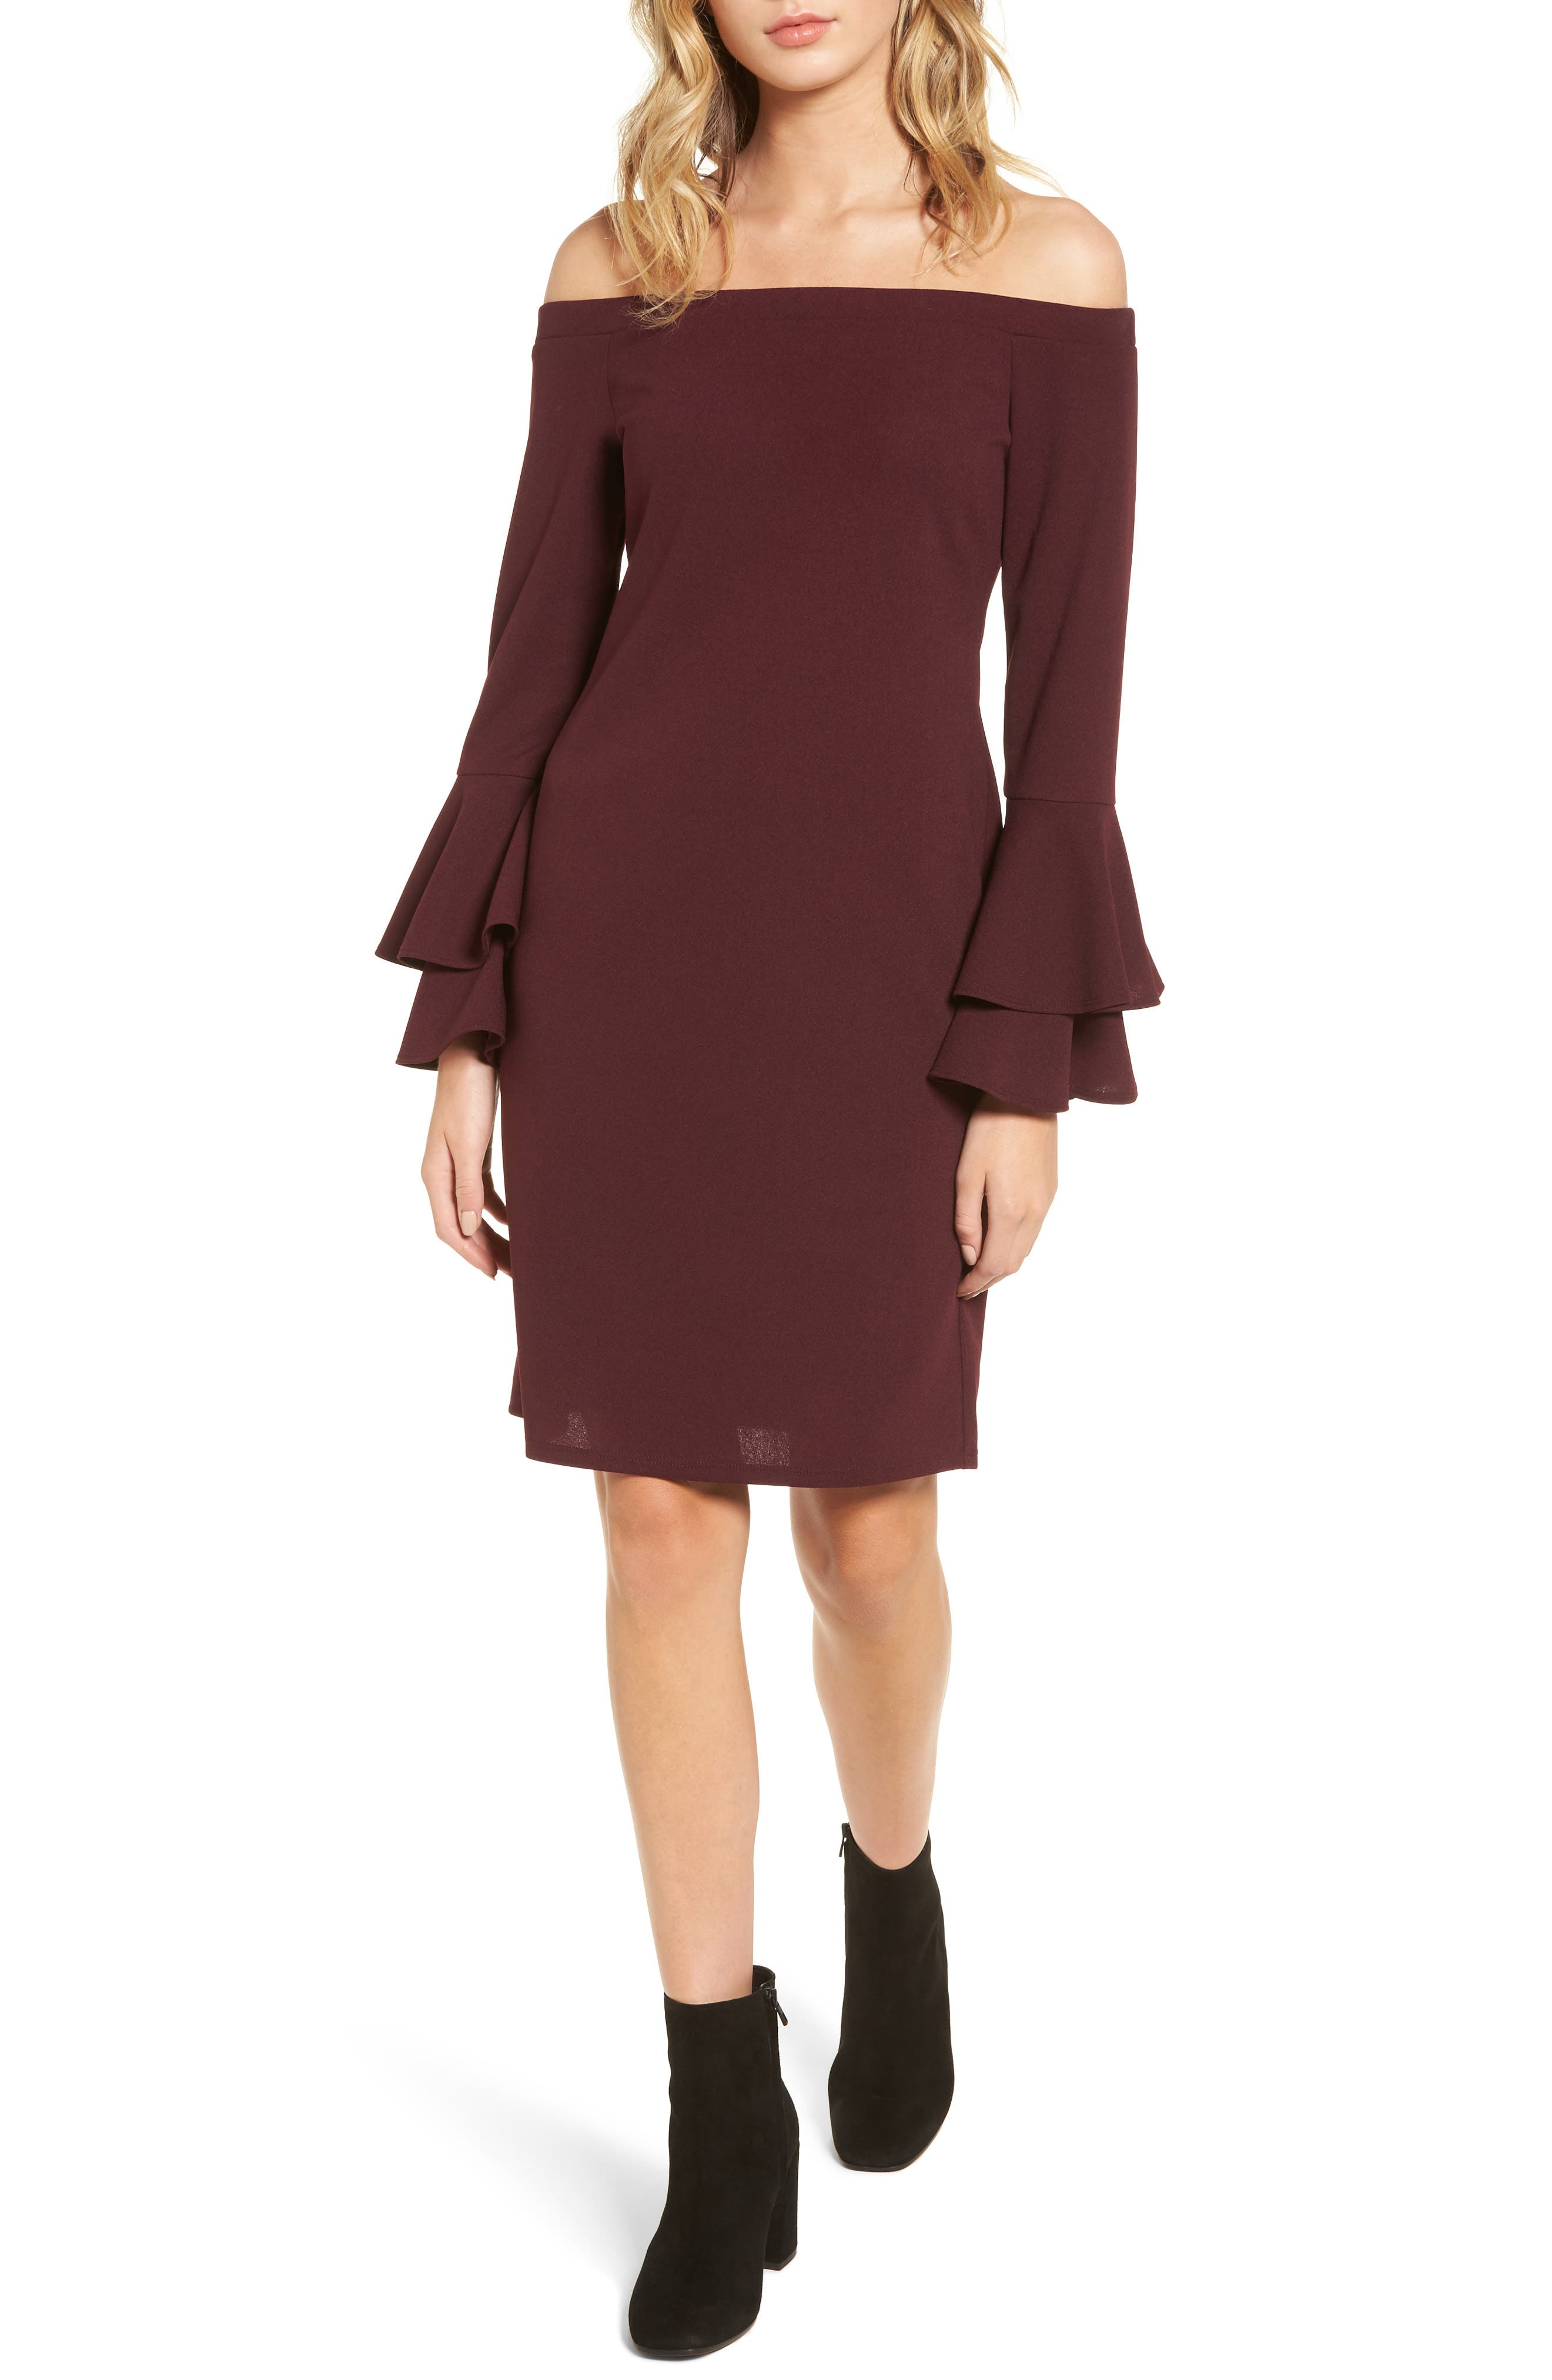 One Clothing Ruffle Sleeve Sheath Dress